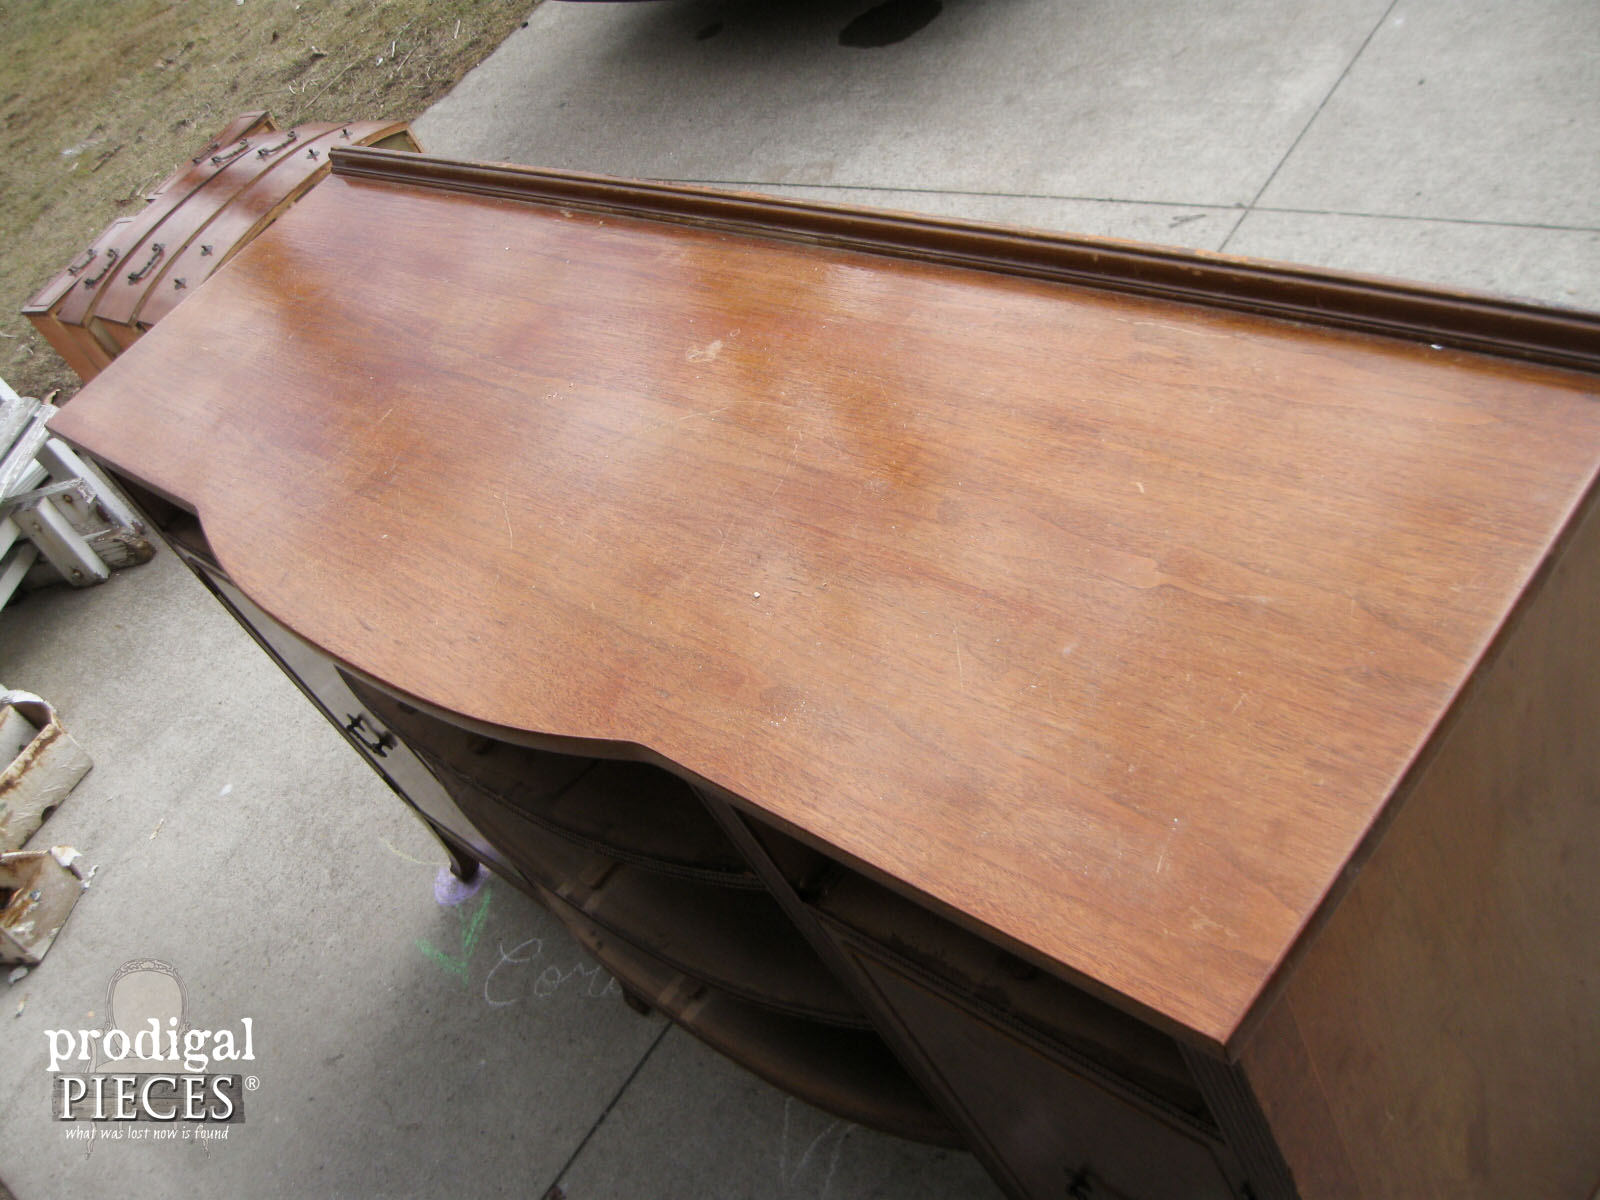 Top of Vintage Sideboard Before Makeover by Prodigal Pieces | www.prodigalpieces.com